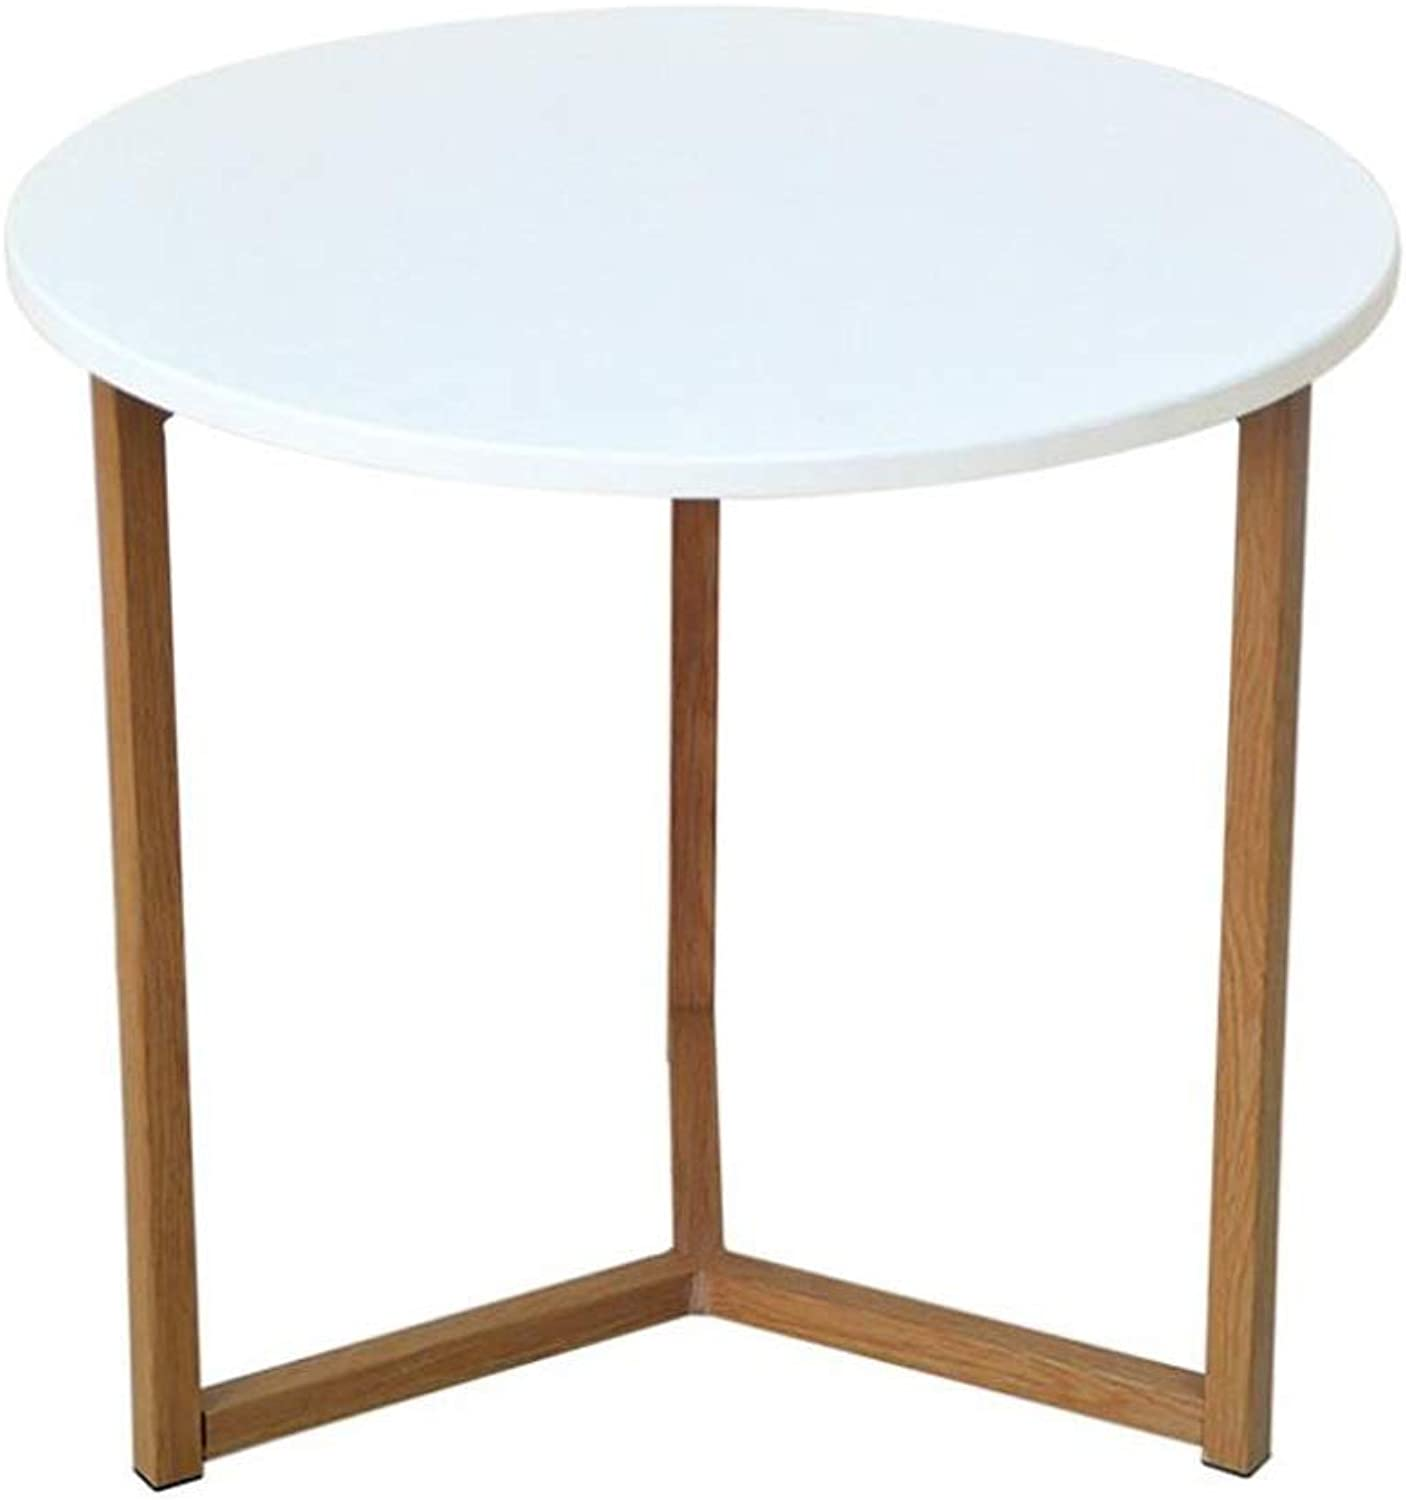 End Table, Round Coffee Table End Table with Natural Oak Wood Legs Living Room Sofa Multi-Function Side (Size   40CM)